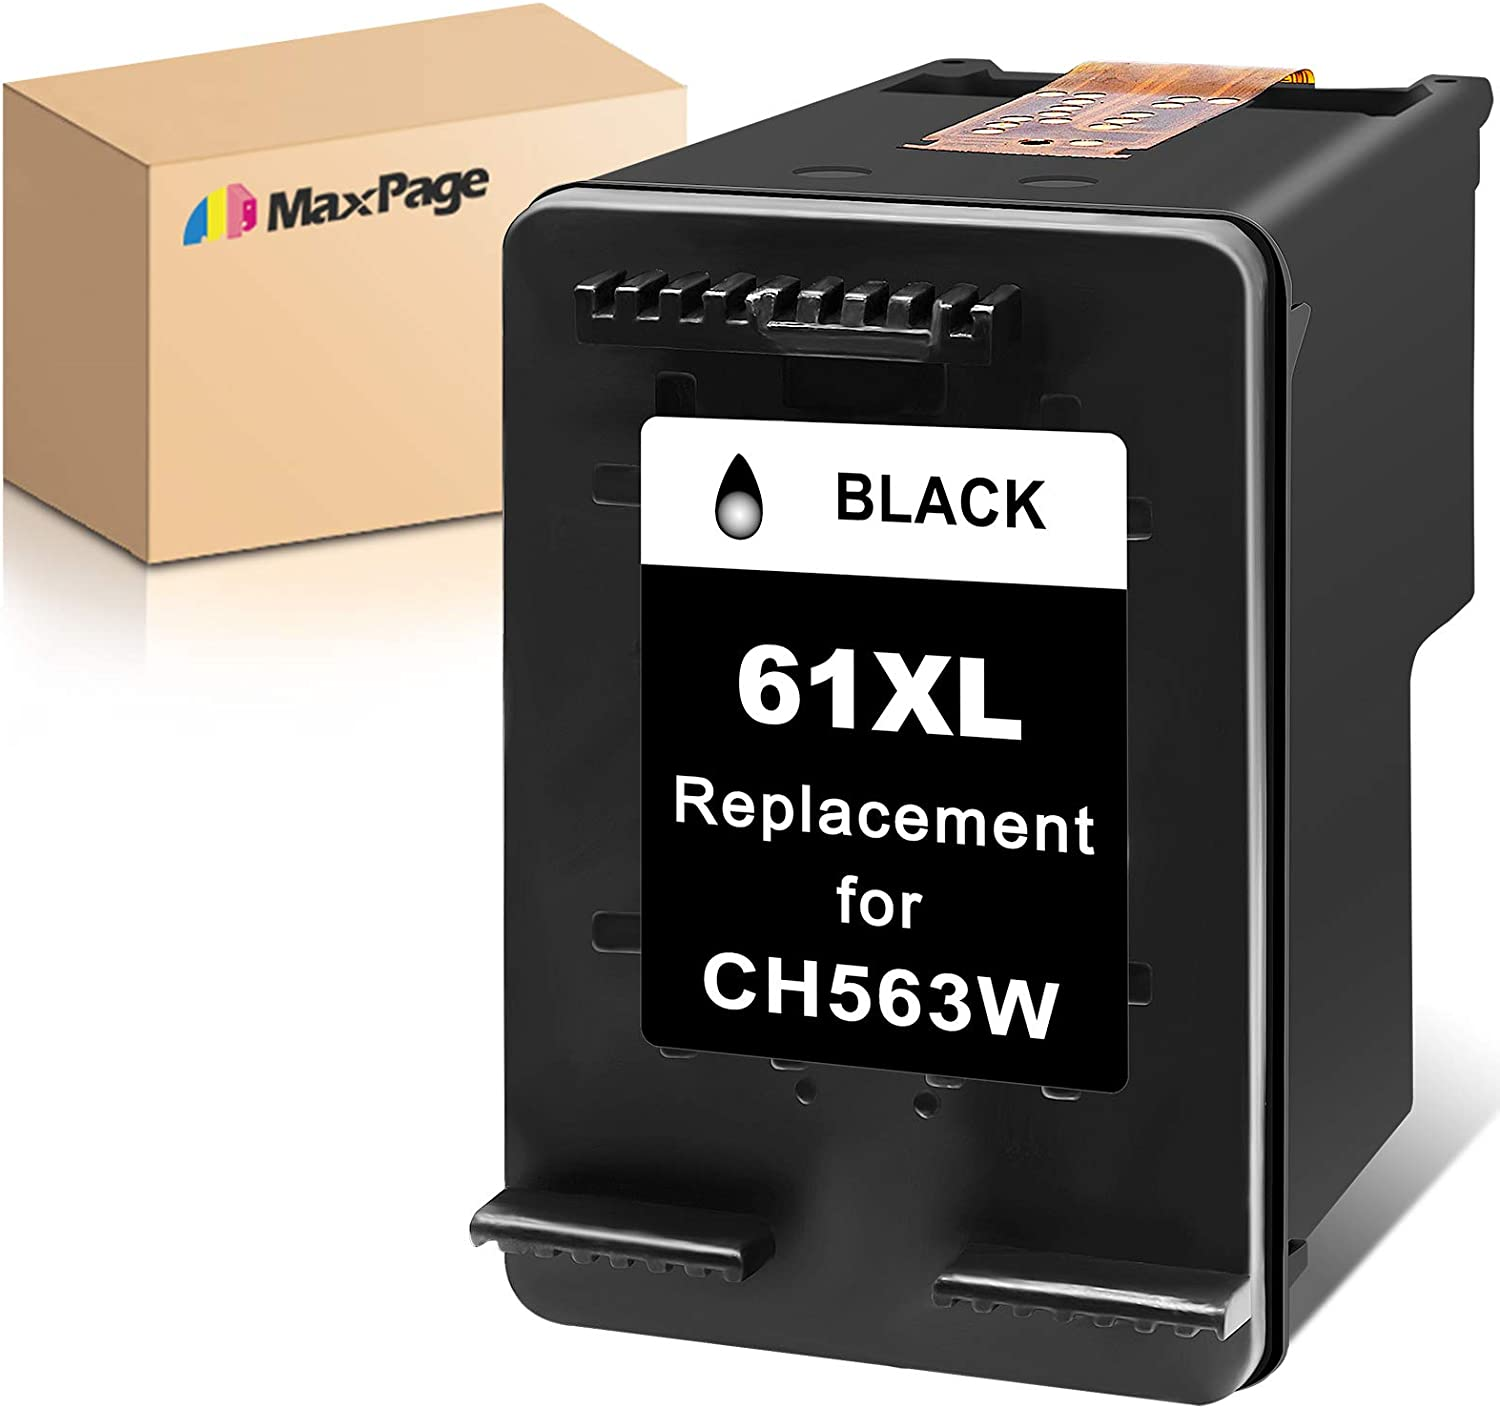 MaxPage Remanufactured Ink Cartridge Replacement for HP 61XL 61 XL Black to Use with Envy 4500 4502 5530 DeskJet 2512 1512 2542 2540 2544 3000 3052a 1055 3051a 2548 OfficeJet 4630 Printer, 1-Pack